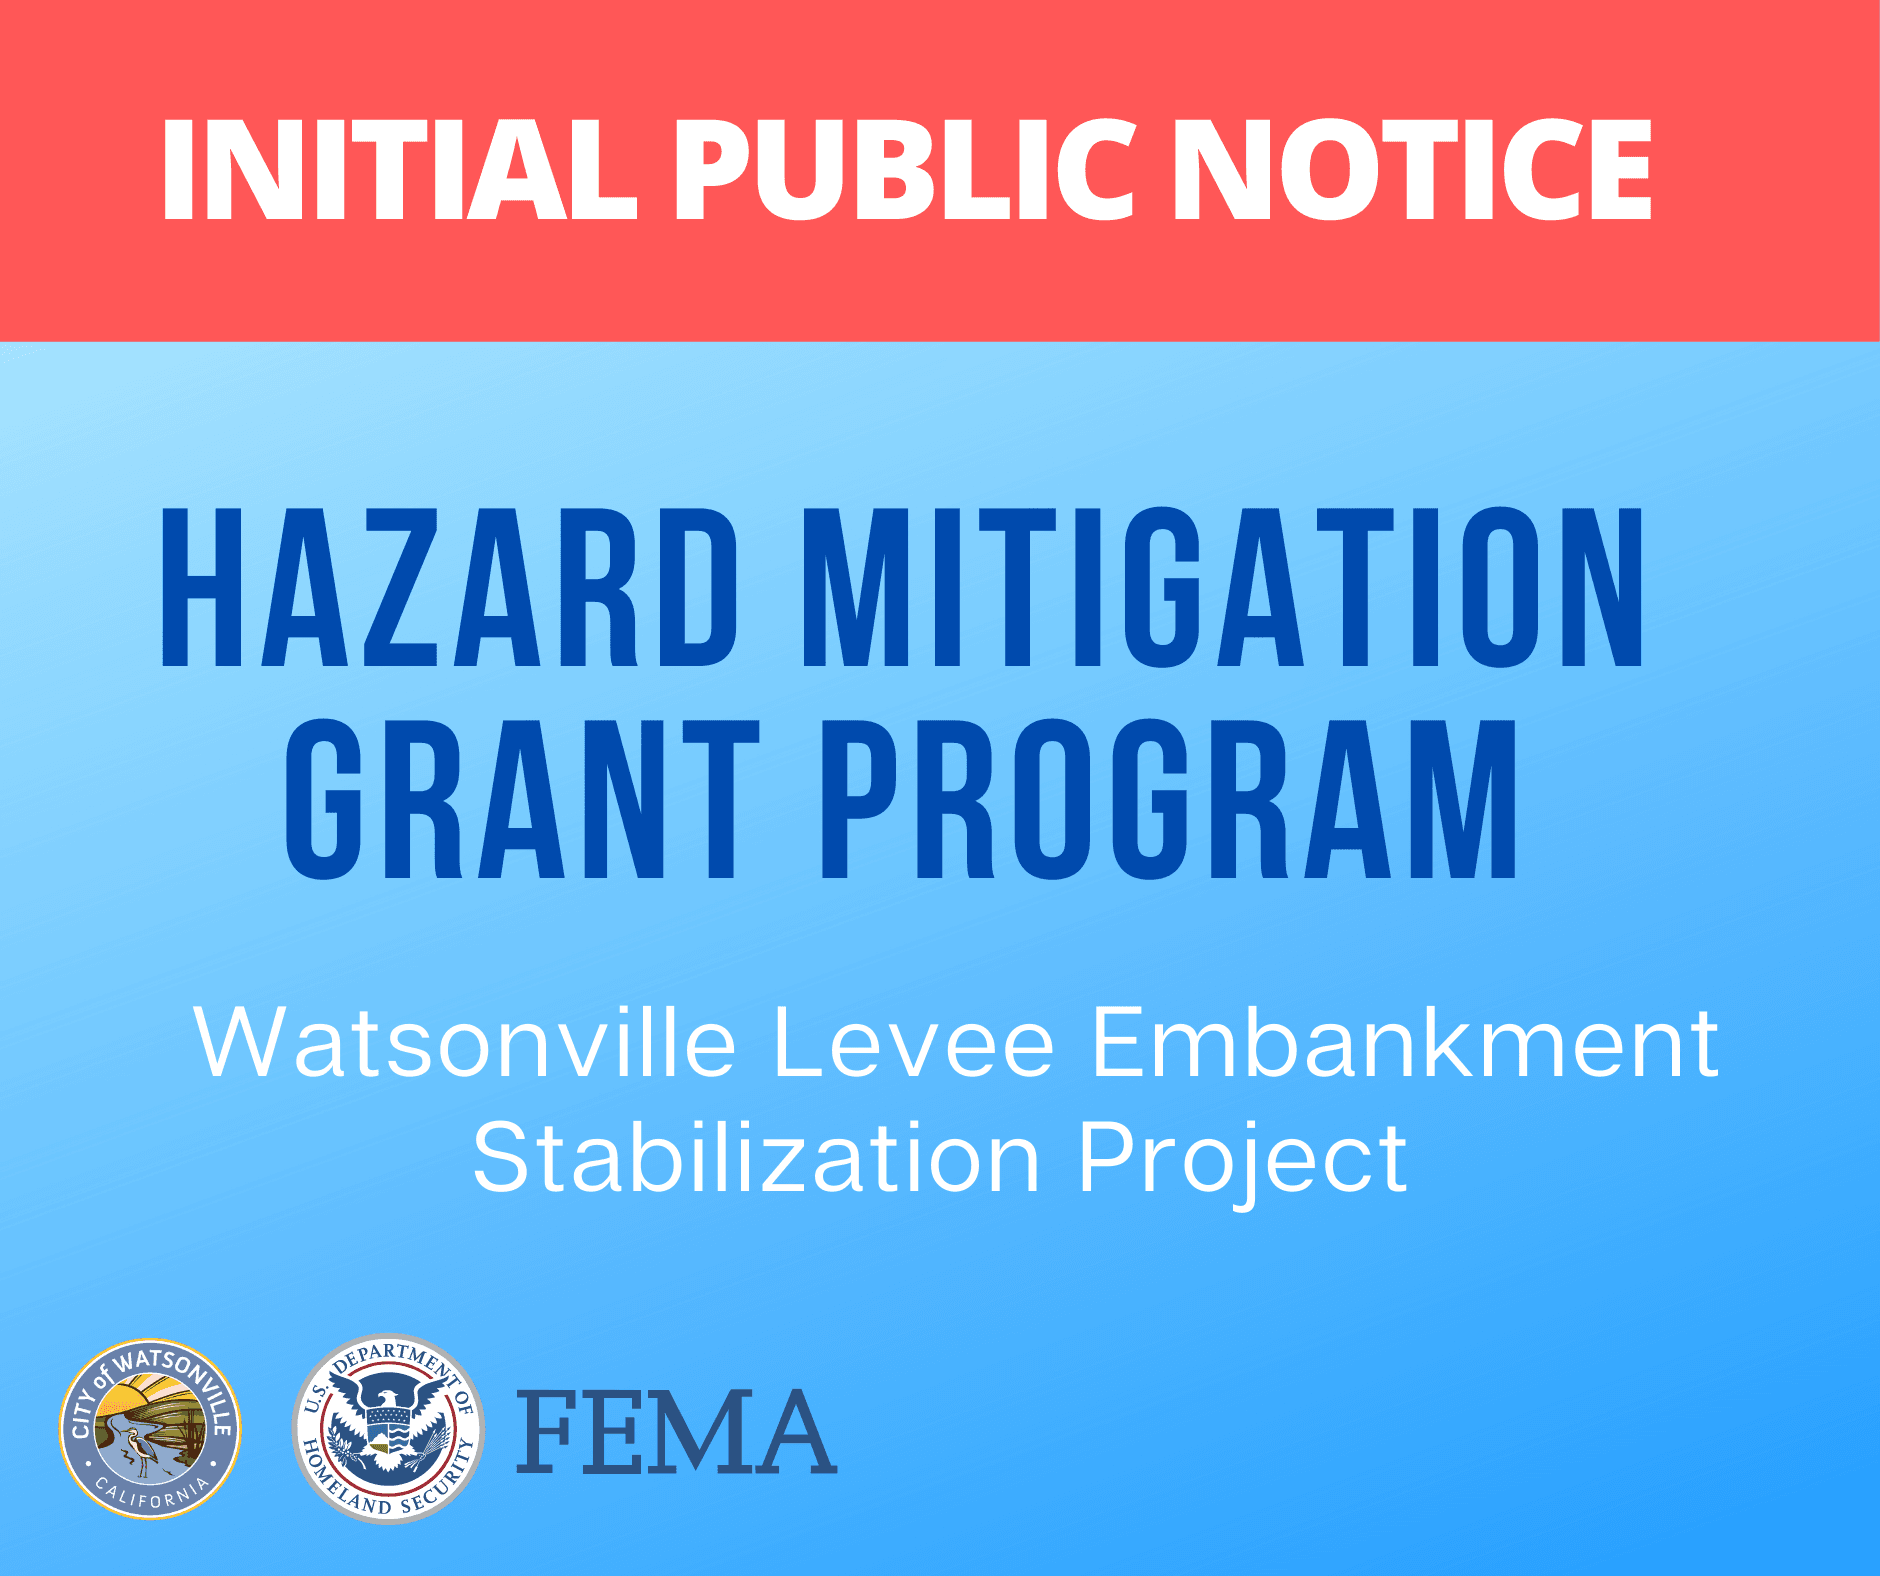 Initial Public Notice - Hazard Mitigation Grant Program - Watsonville Levee Embankment Stabilization